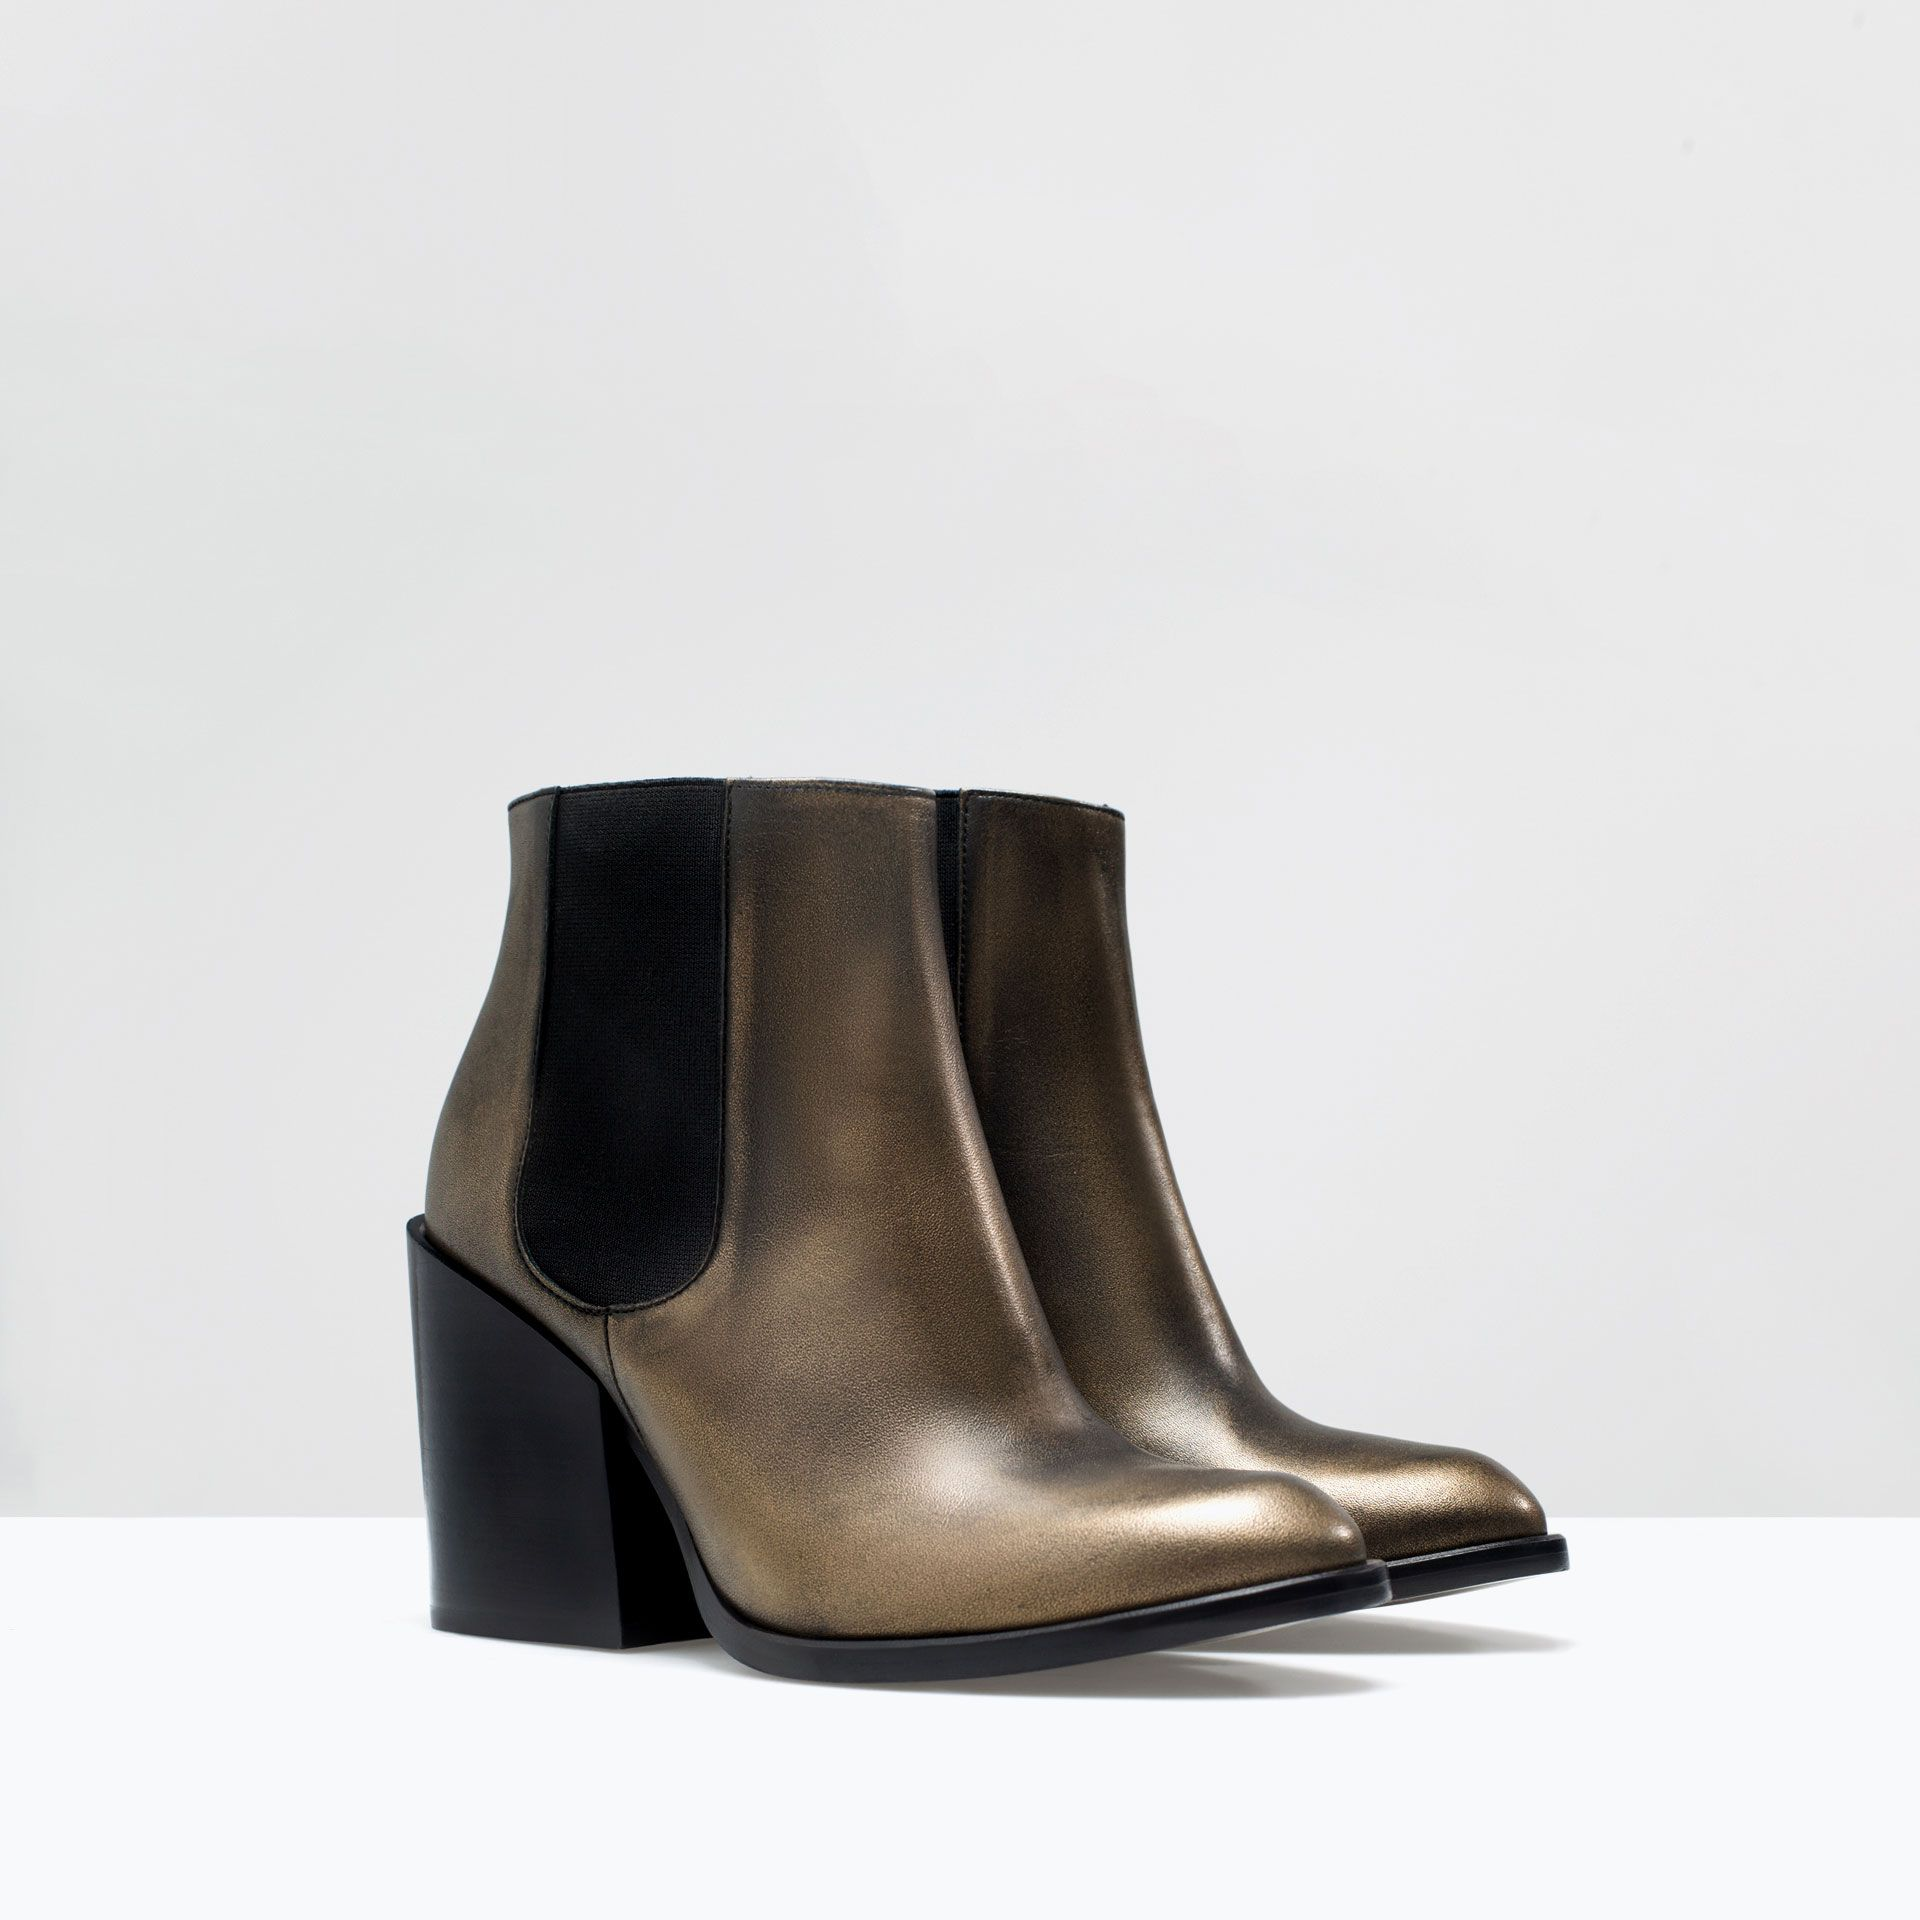 ZARA - NEW THIS WEEK - LEATHER HIGH HEELED BOOTS